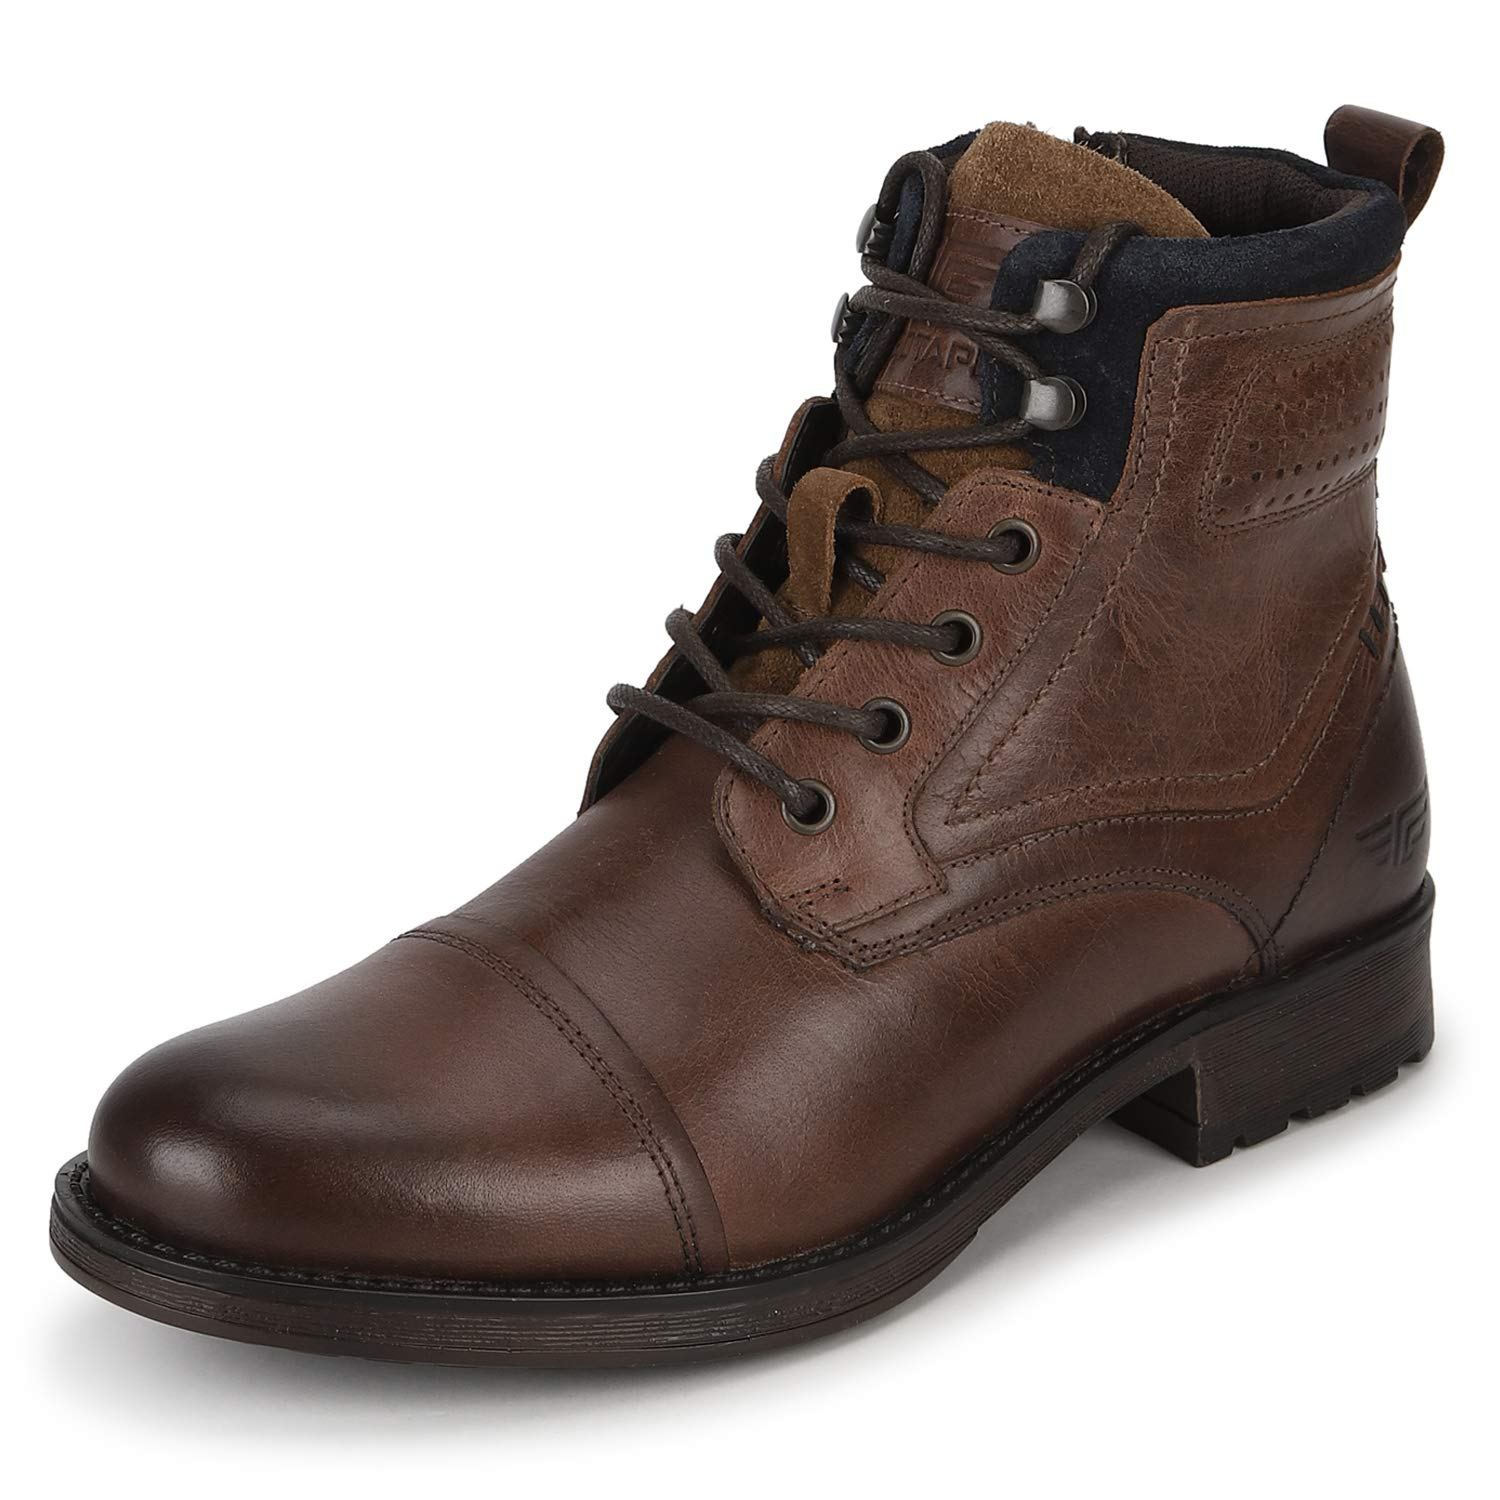 Brown Leather Outdoor Boots-8 UK